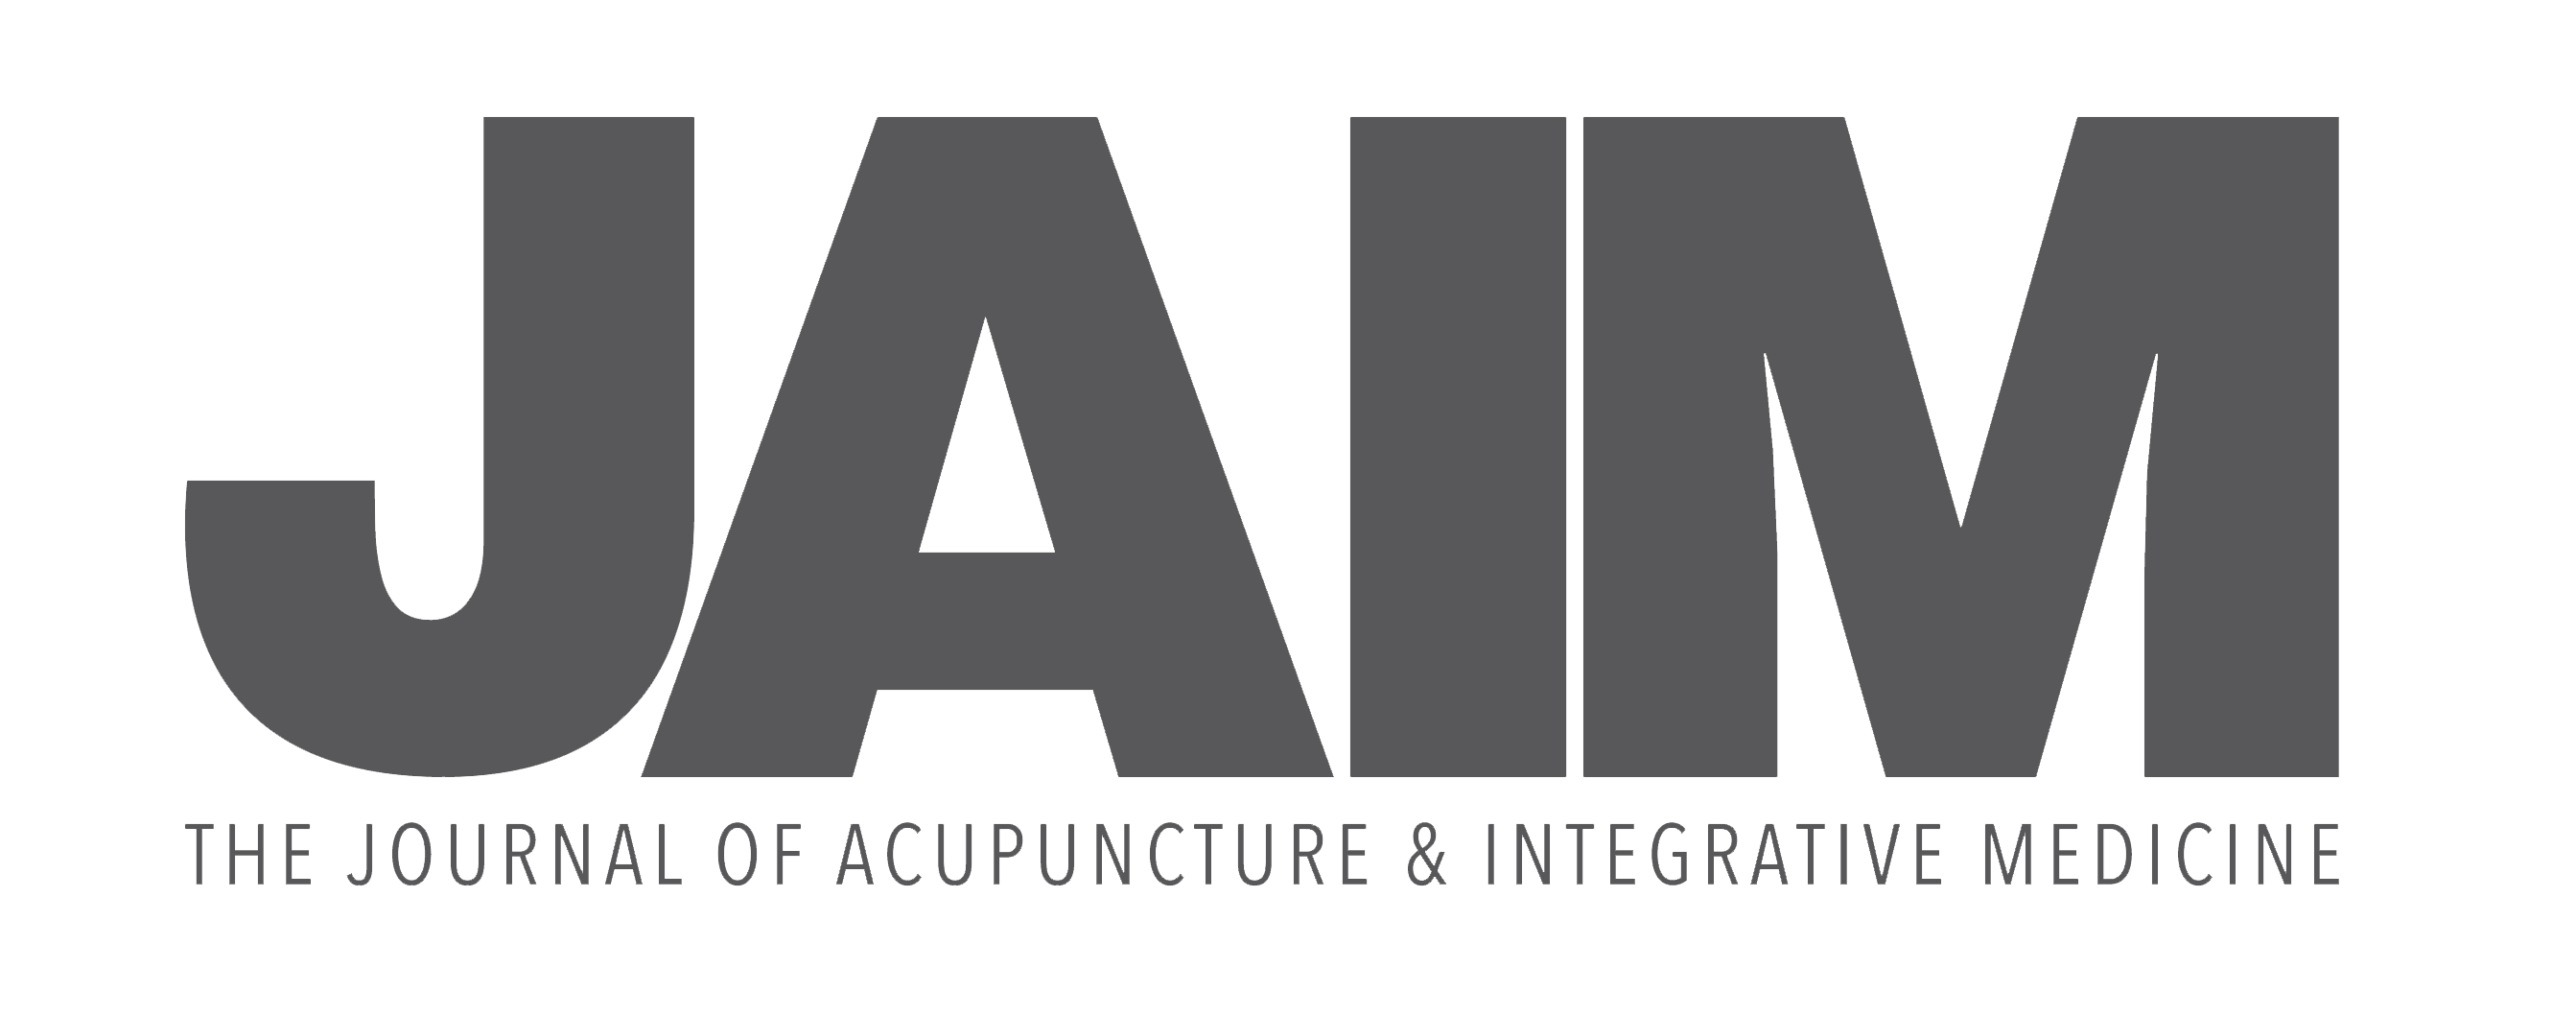 Journal of Acupuncture & Integrative Medicine